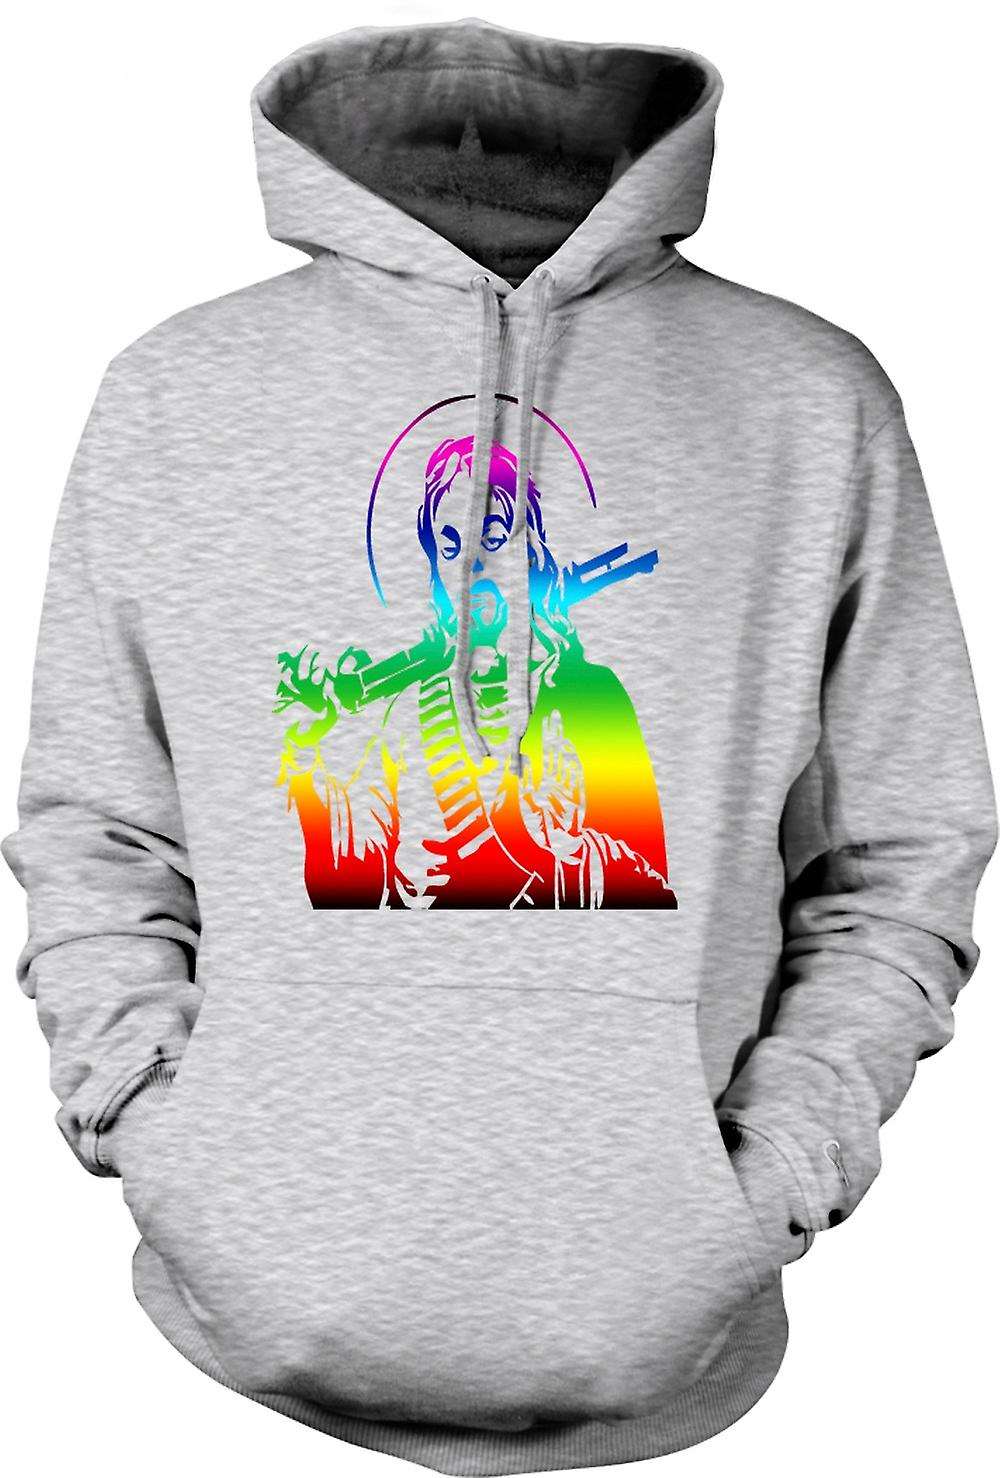 Mens Hoodie - Jesus With A Shotgun - Cool